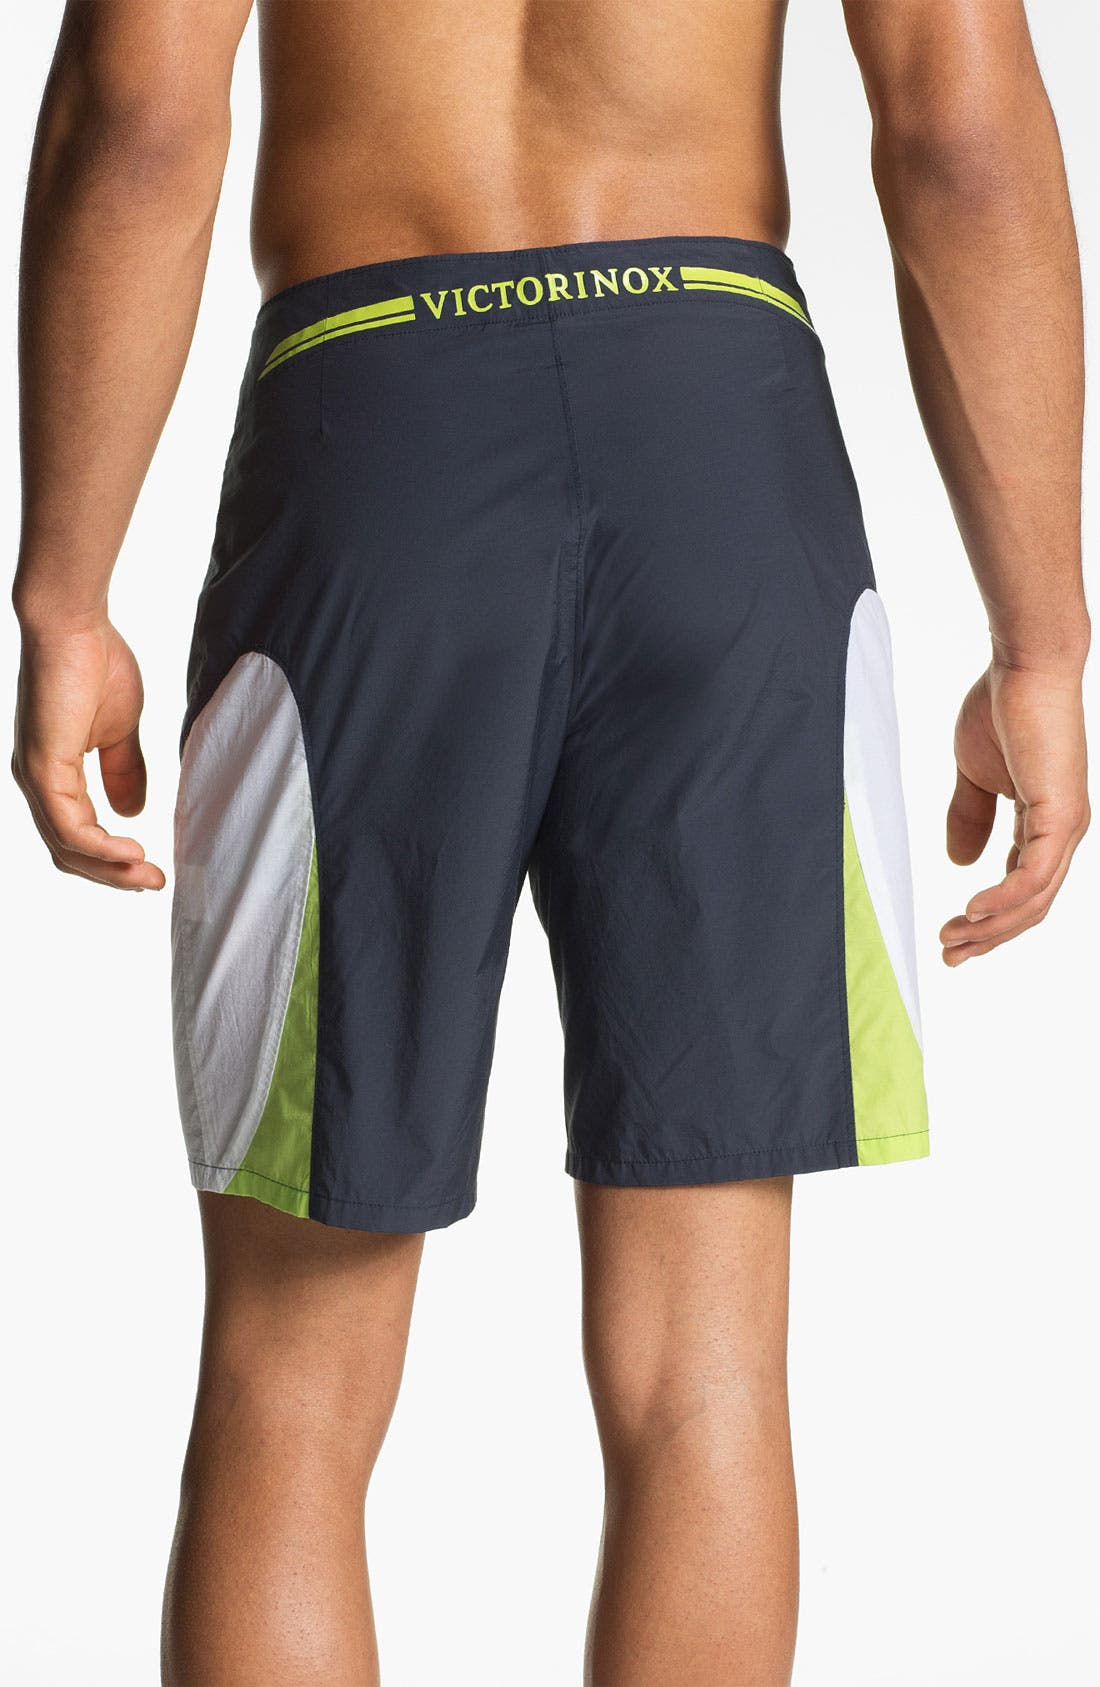 Alternate Image 2  - Victorinox Swiss Army® 'Finn' Board Shorts